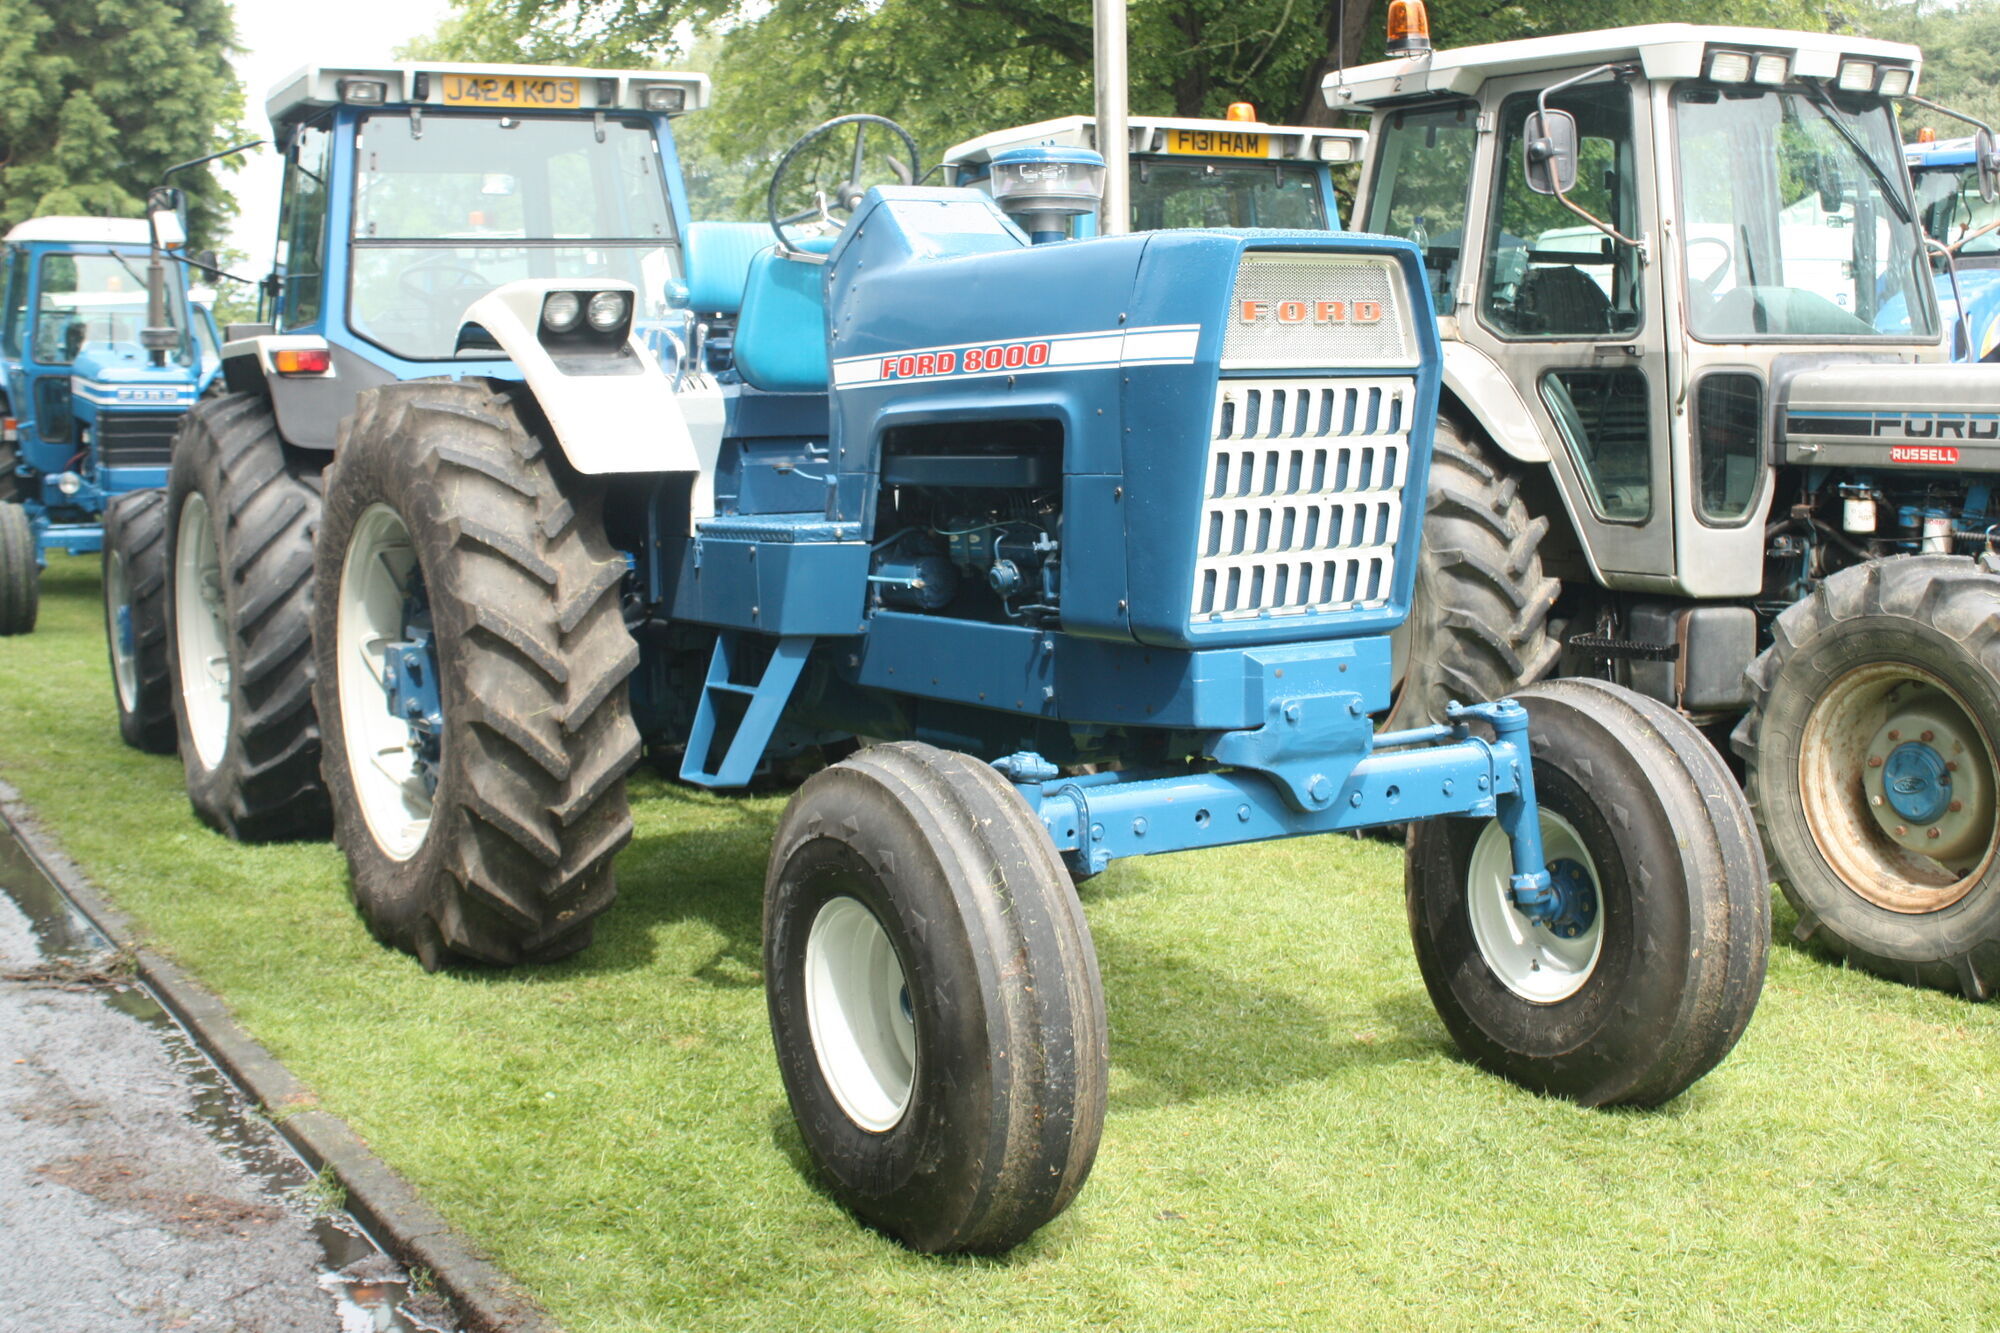 1968 Ford 2000 Diesel Tractor : Ford tractor construction plant wiki fandom